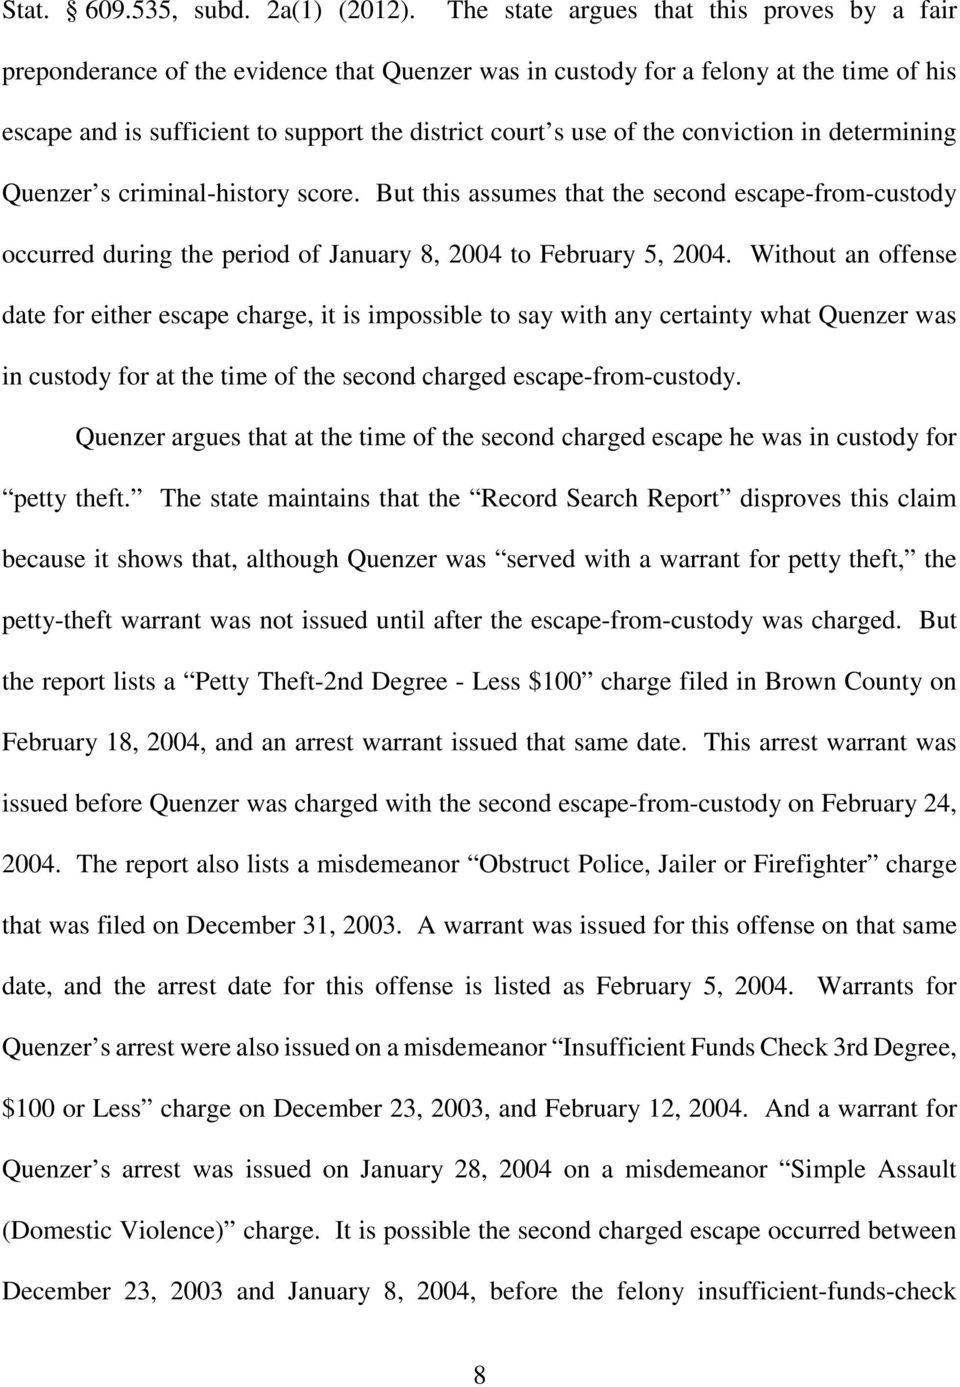 the conviction in determining Quenzer s criminal-history score. But this assumes that the second escape-from-custody occurred during the period of January 8, 2004 to February 5, 2004.